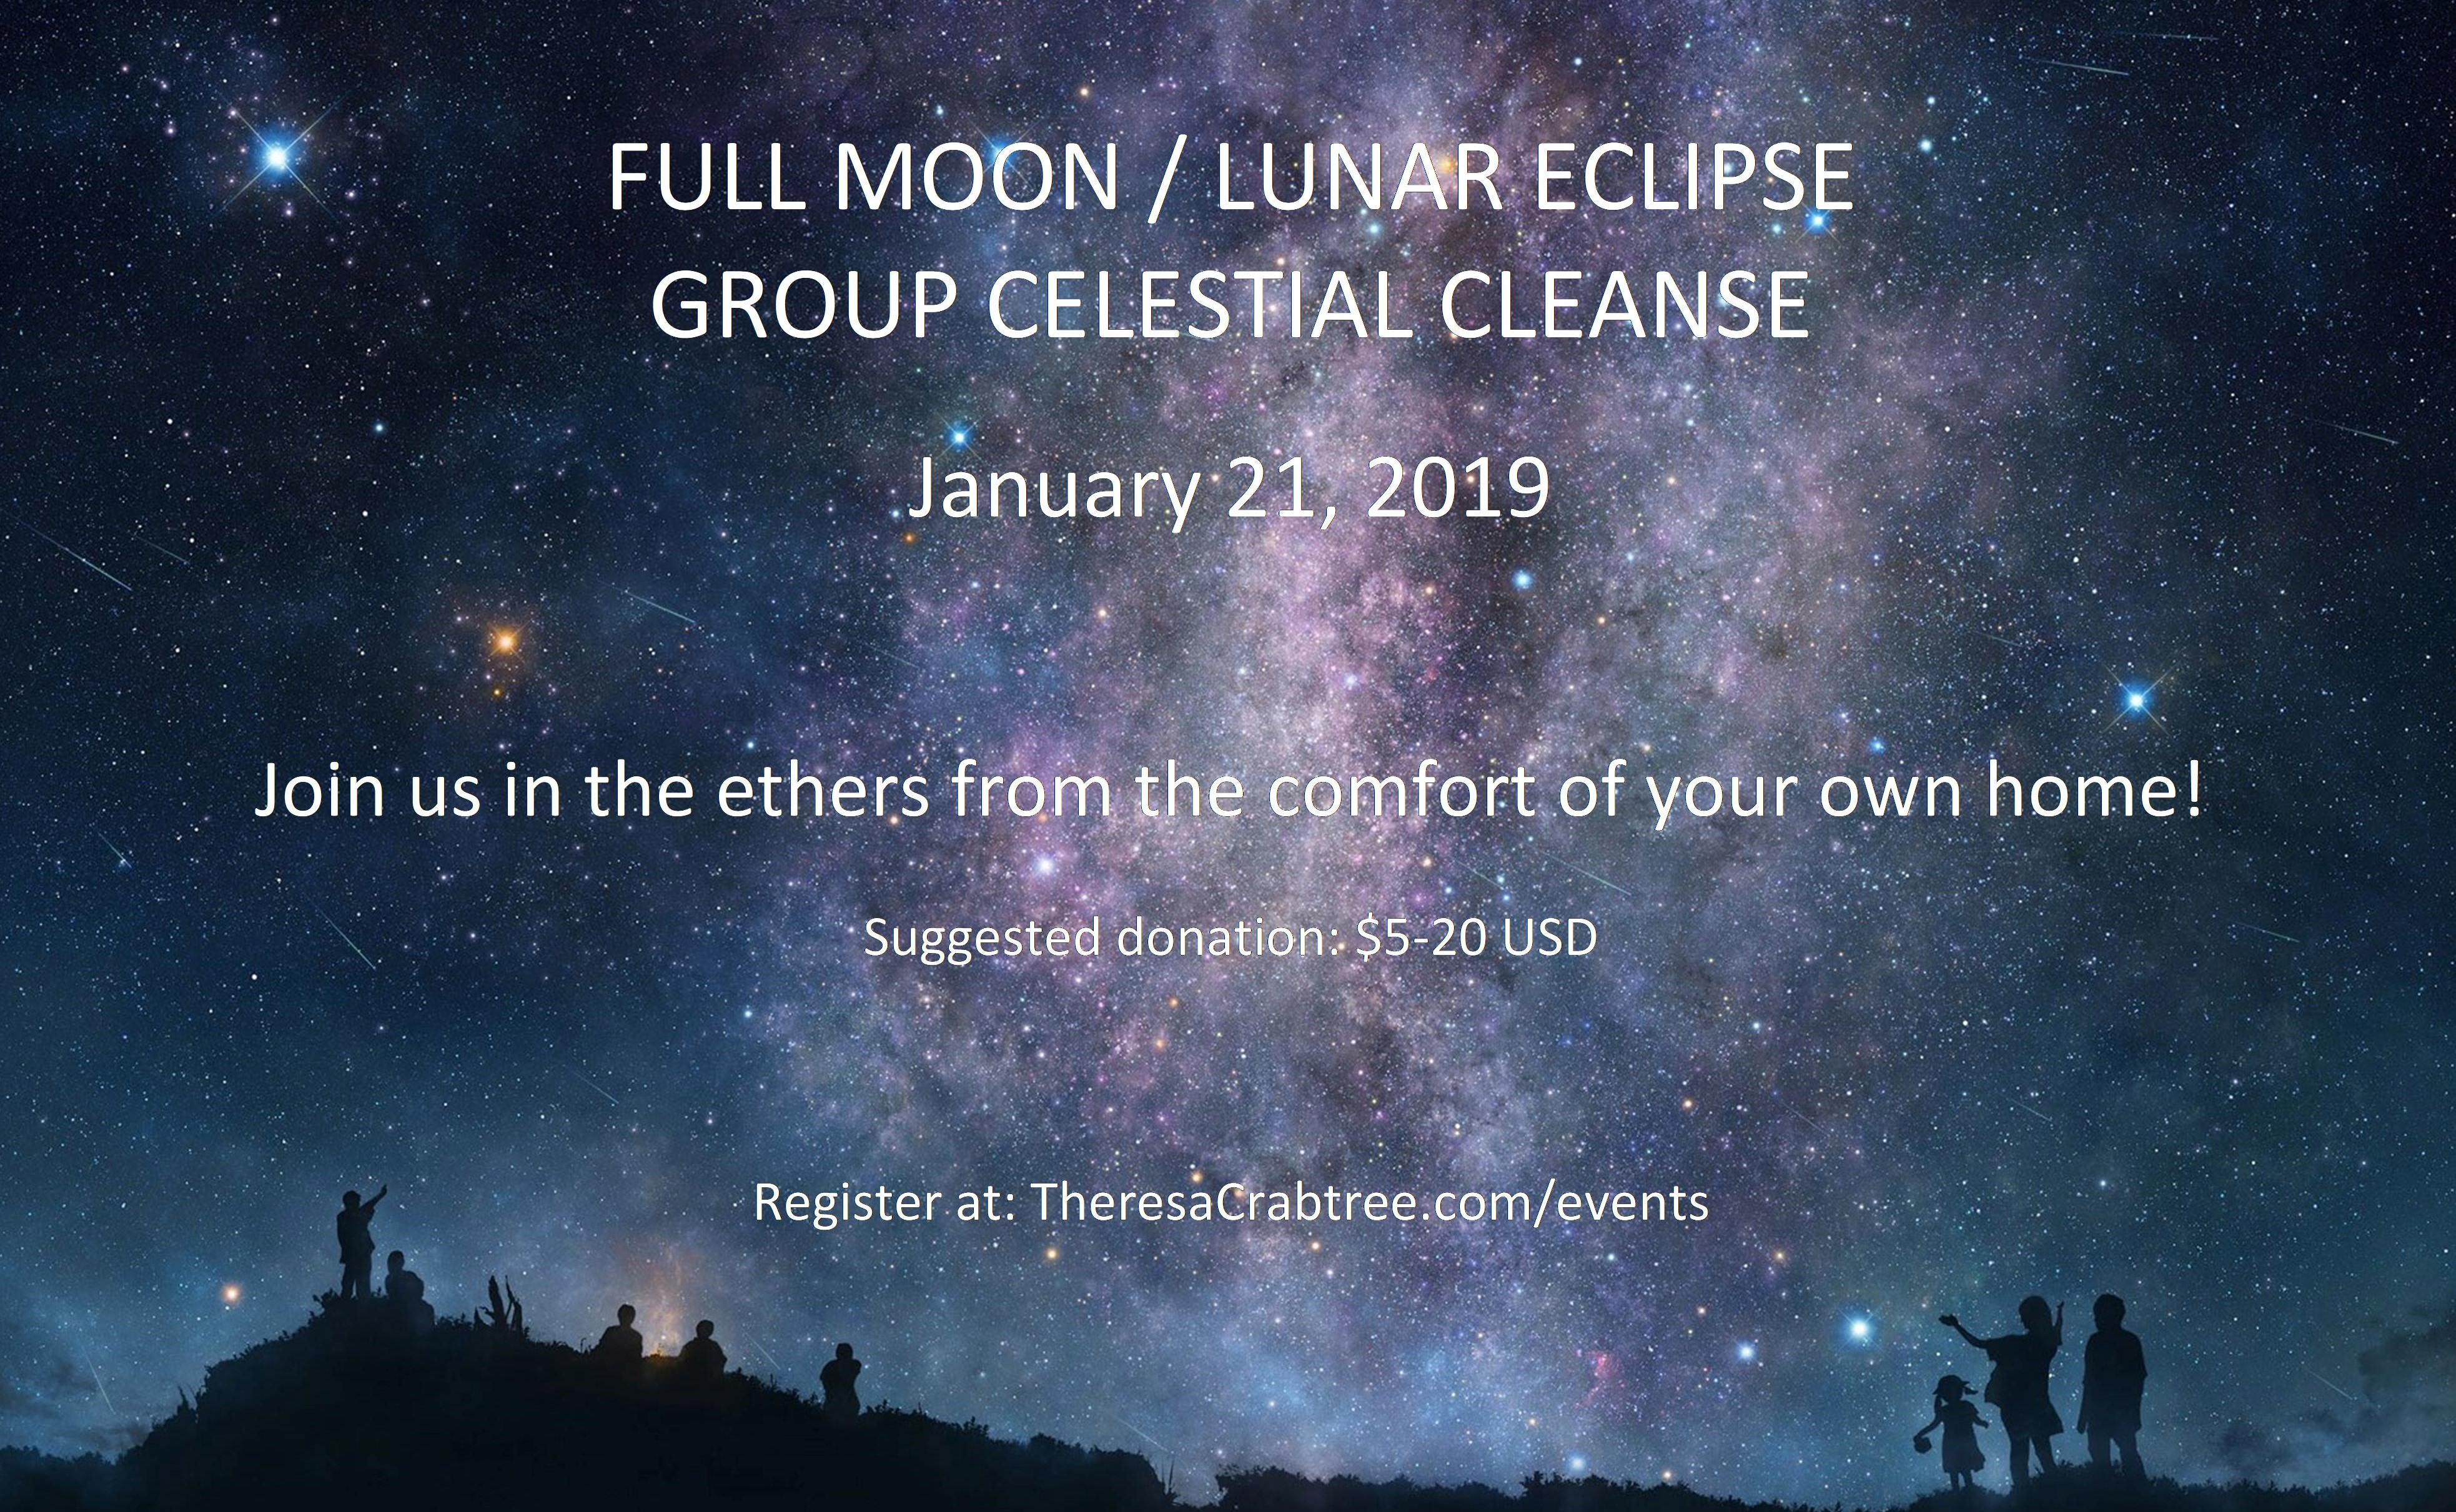 Join us in the Ethers on January 21, 2019!